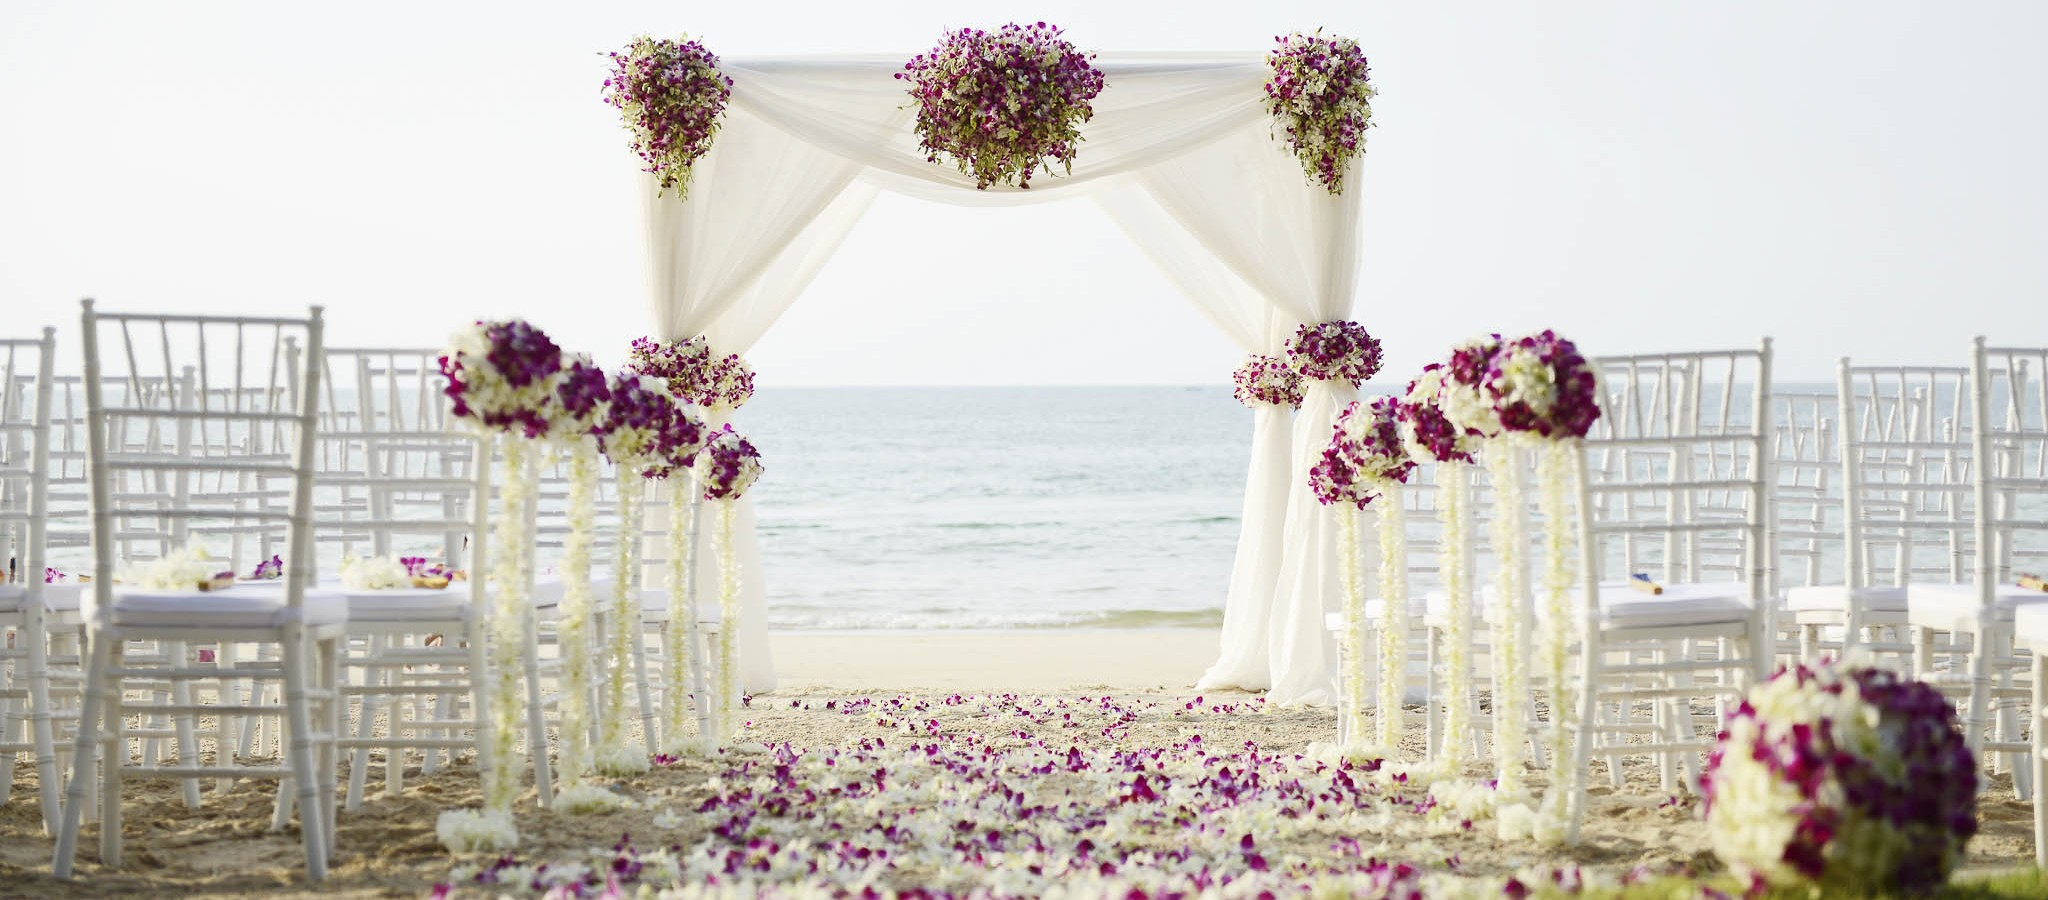 Top 10 Ceremony Arch Designs for Destination Weddings